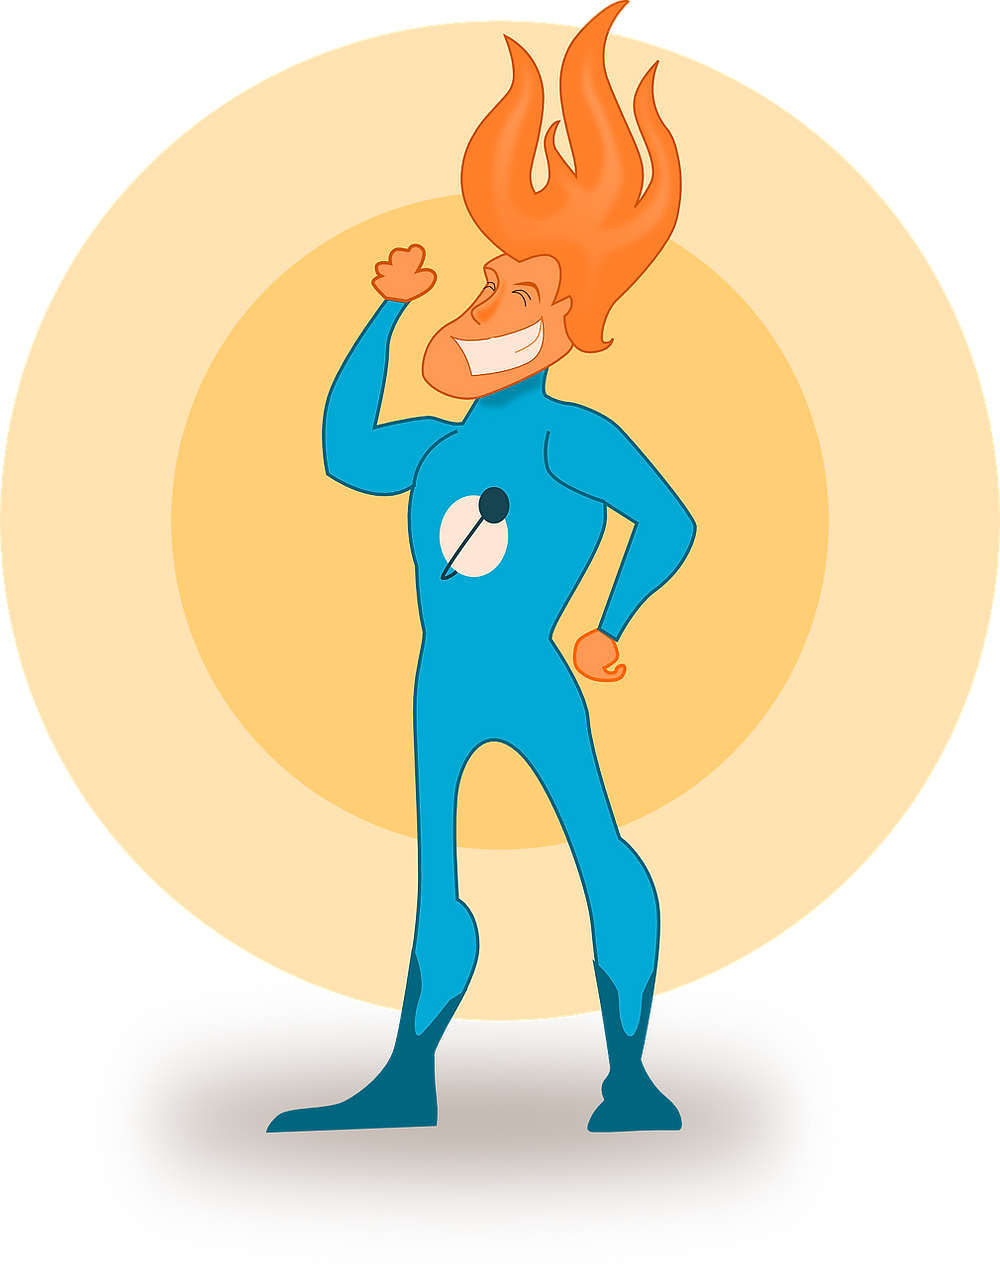 Super hero, confident, cartoon image